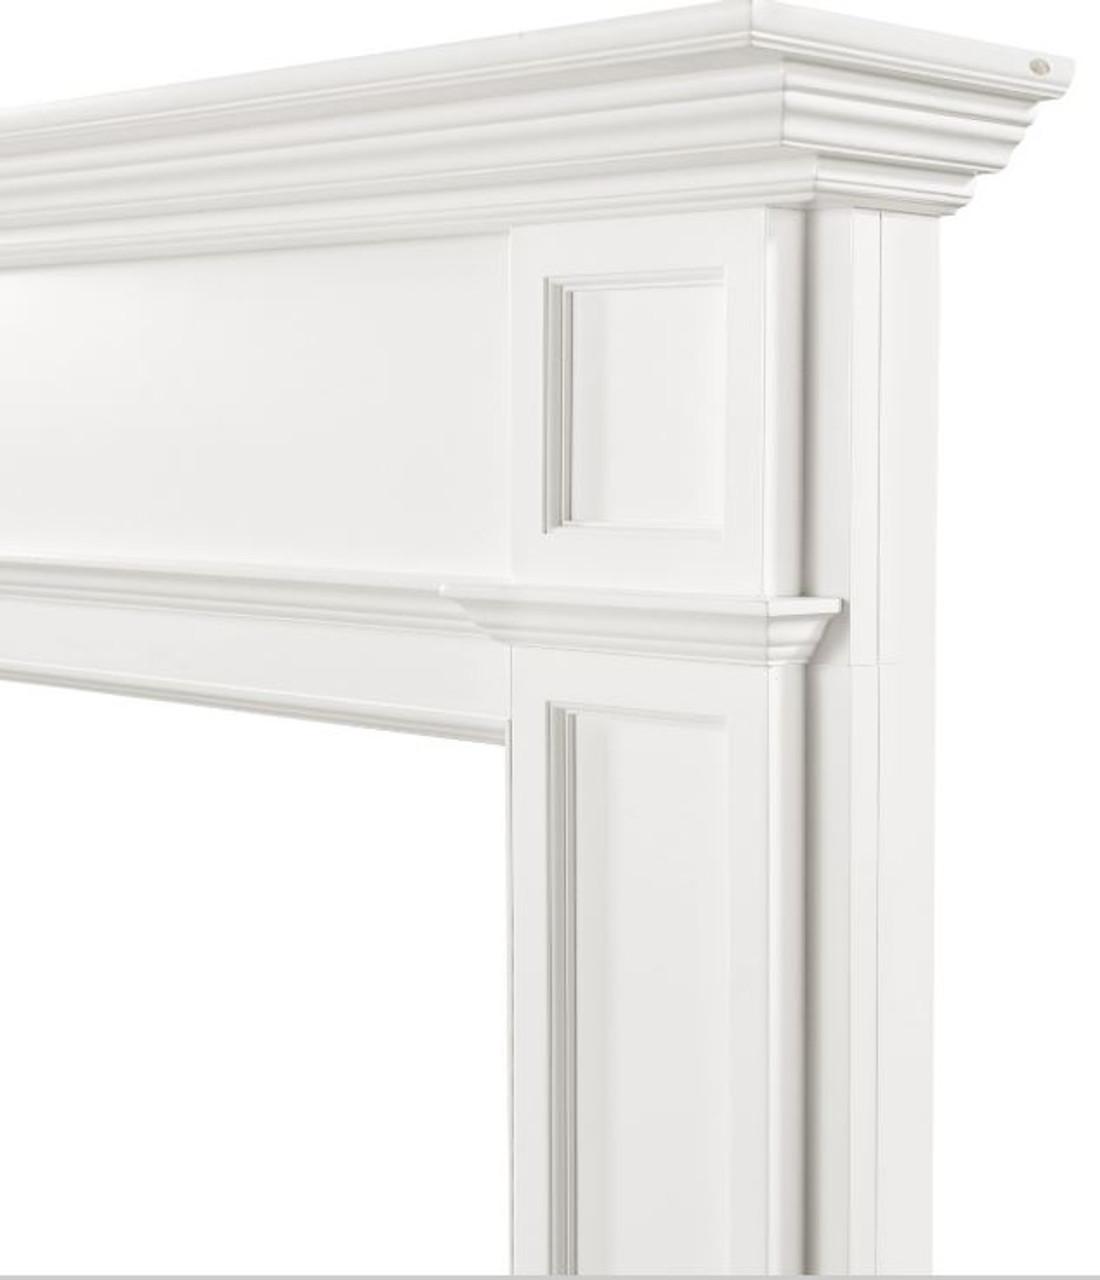 The Marshall Fireplace Mantel Surround, 48 Right Close Up